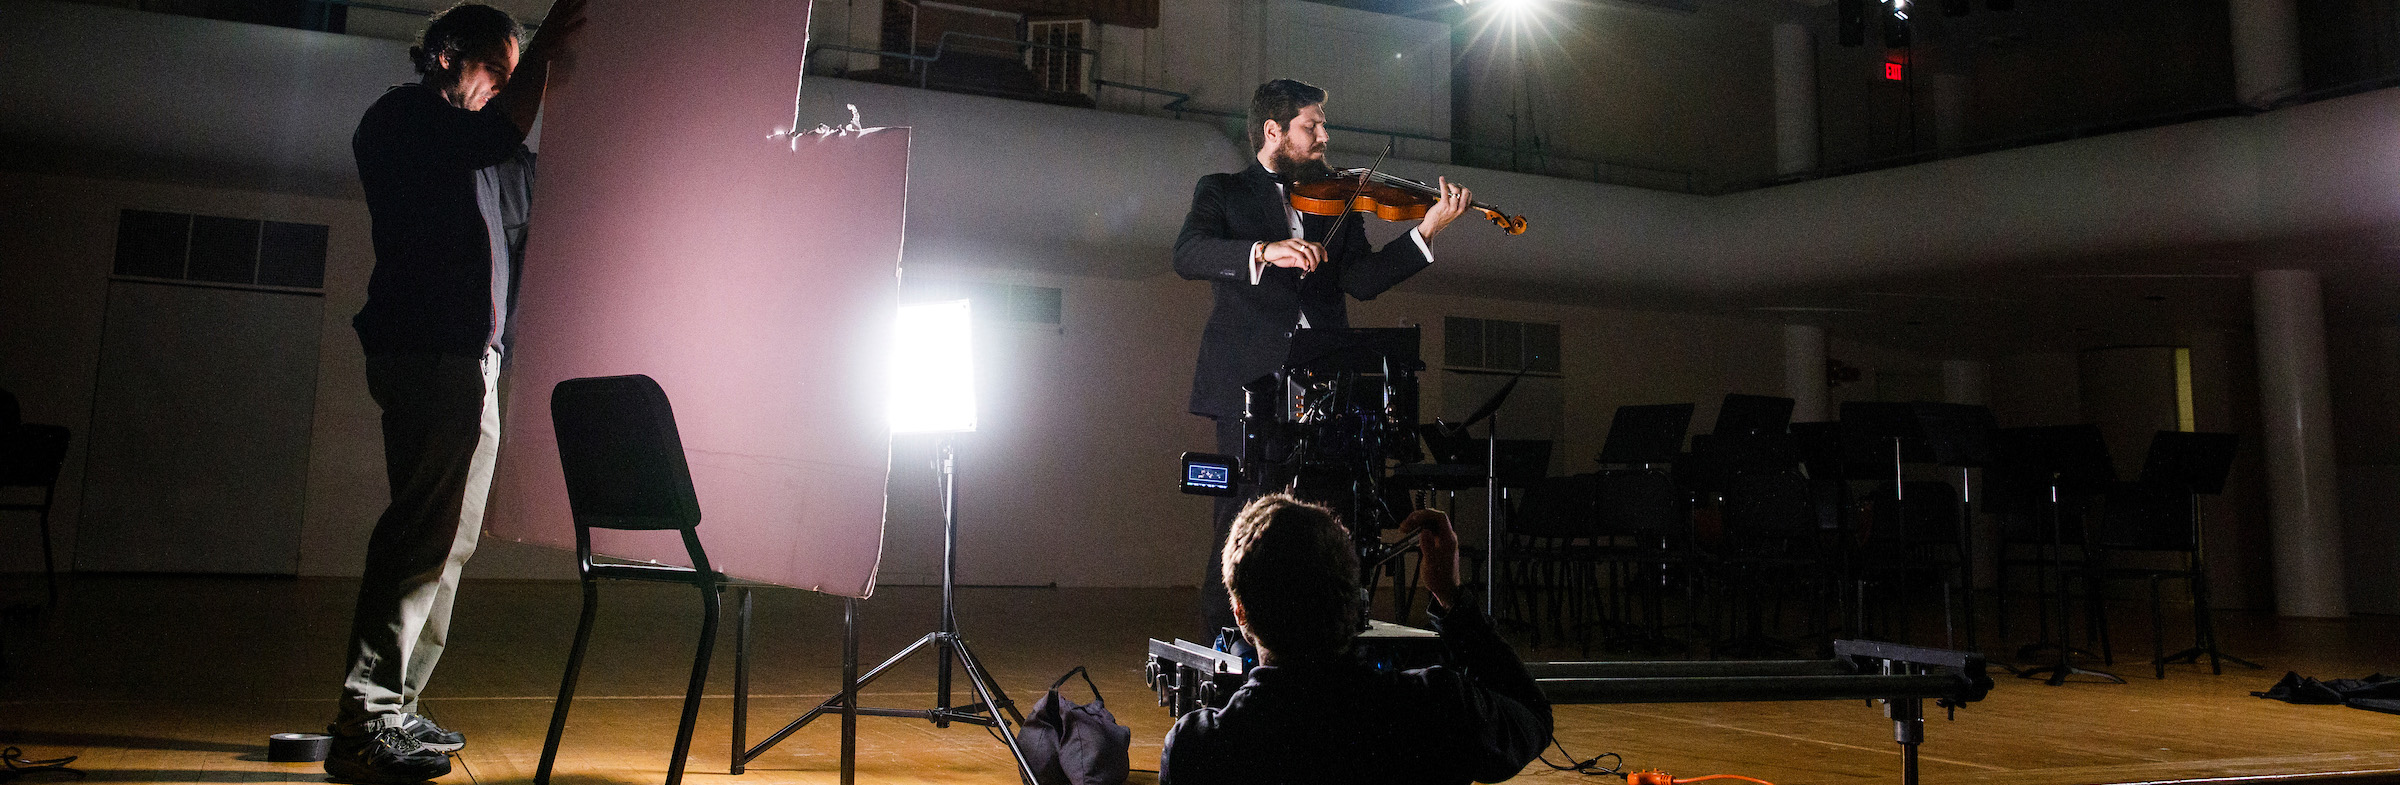 Videographers film a violinist